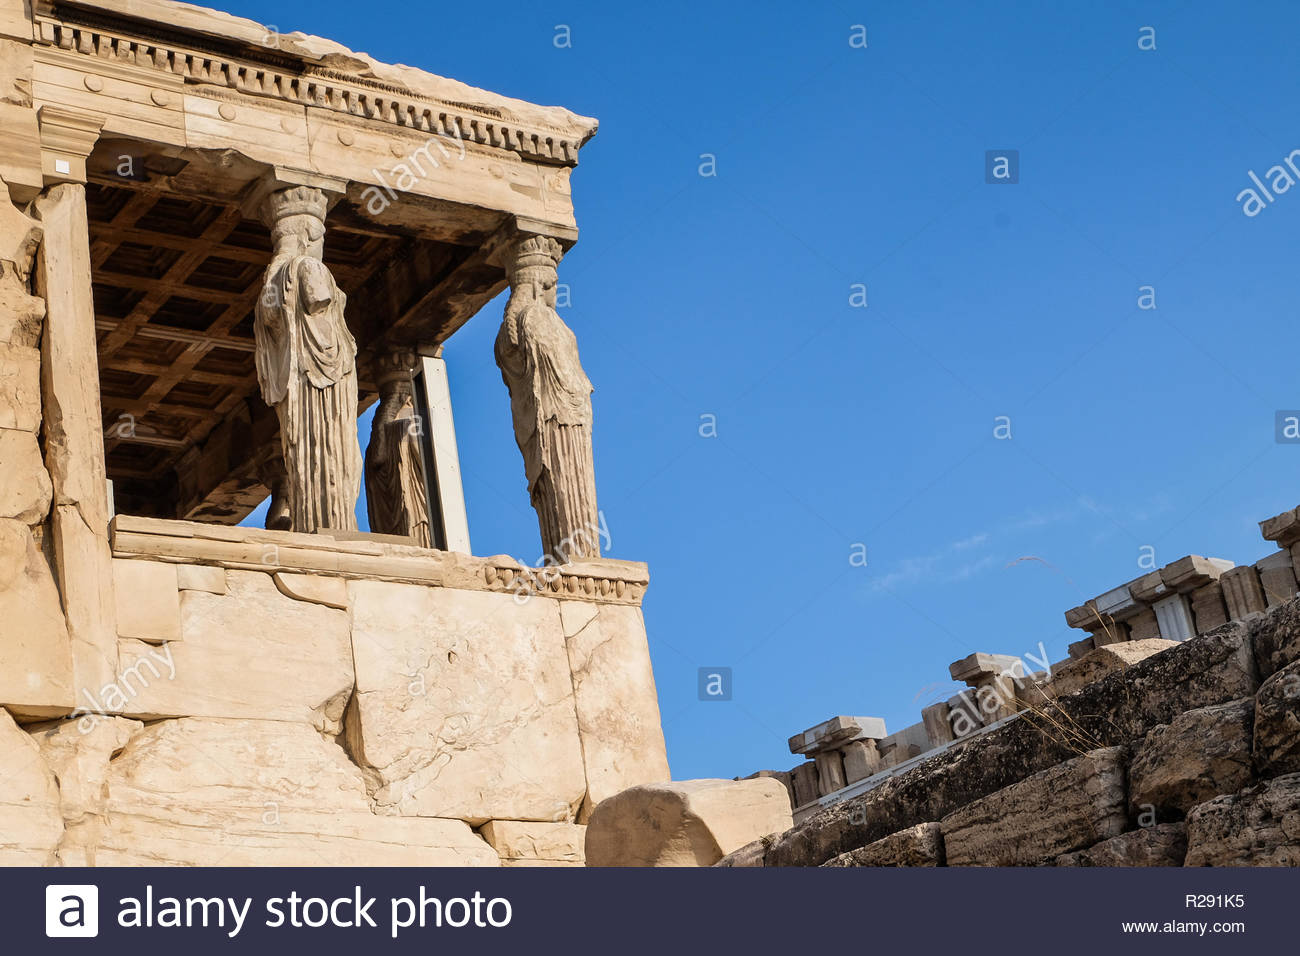 Acropolis of Athens on September 2016 - Stock Image